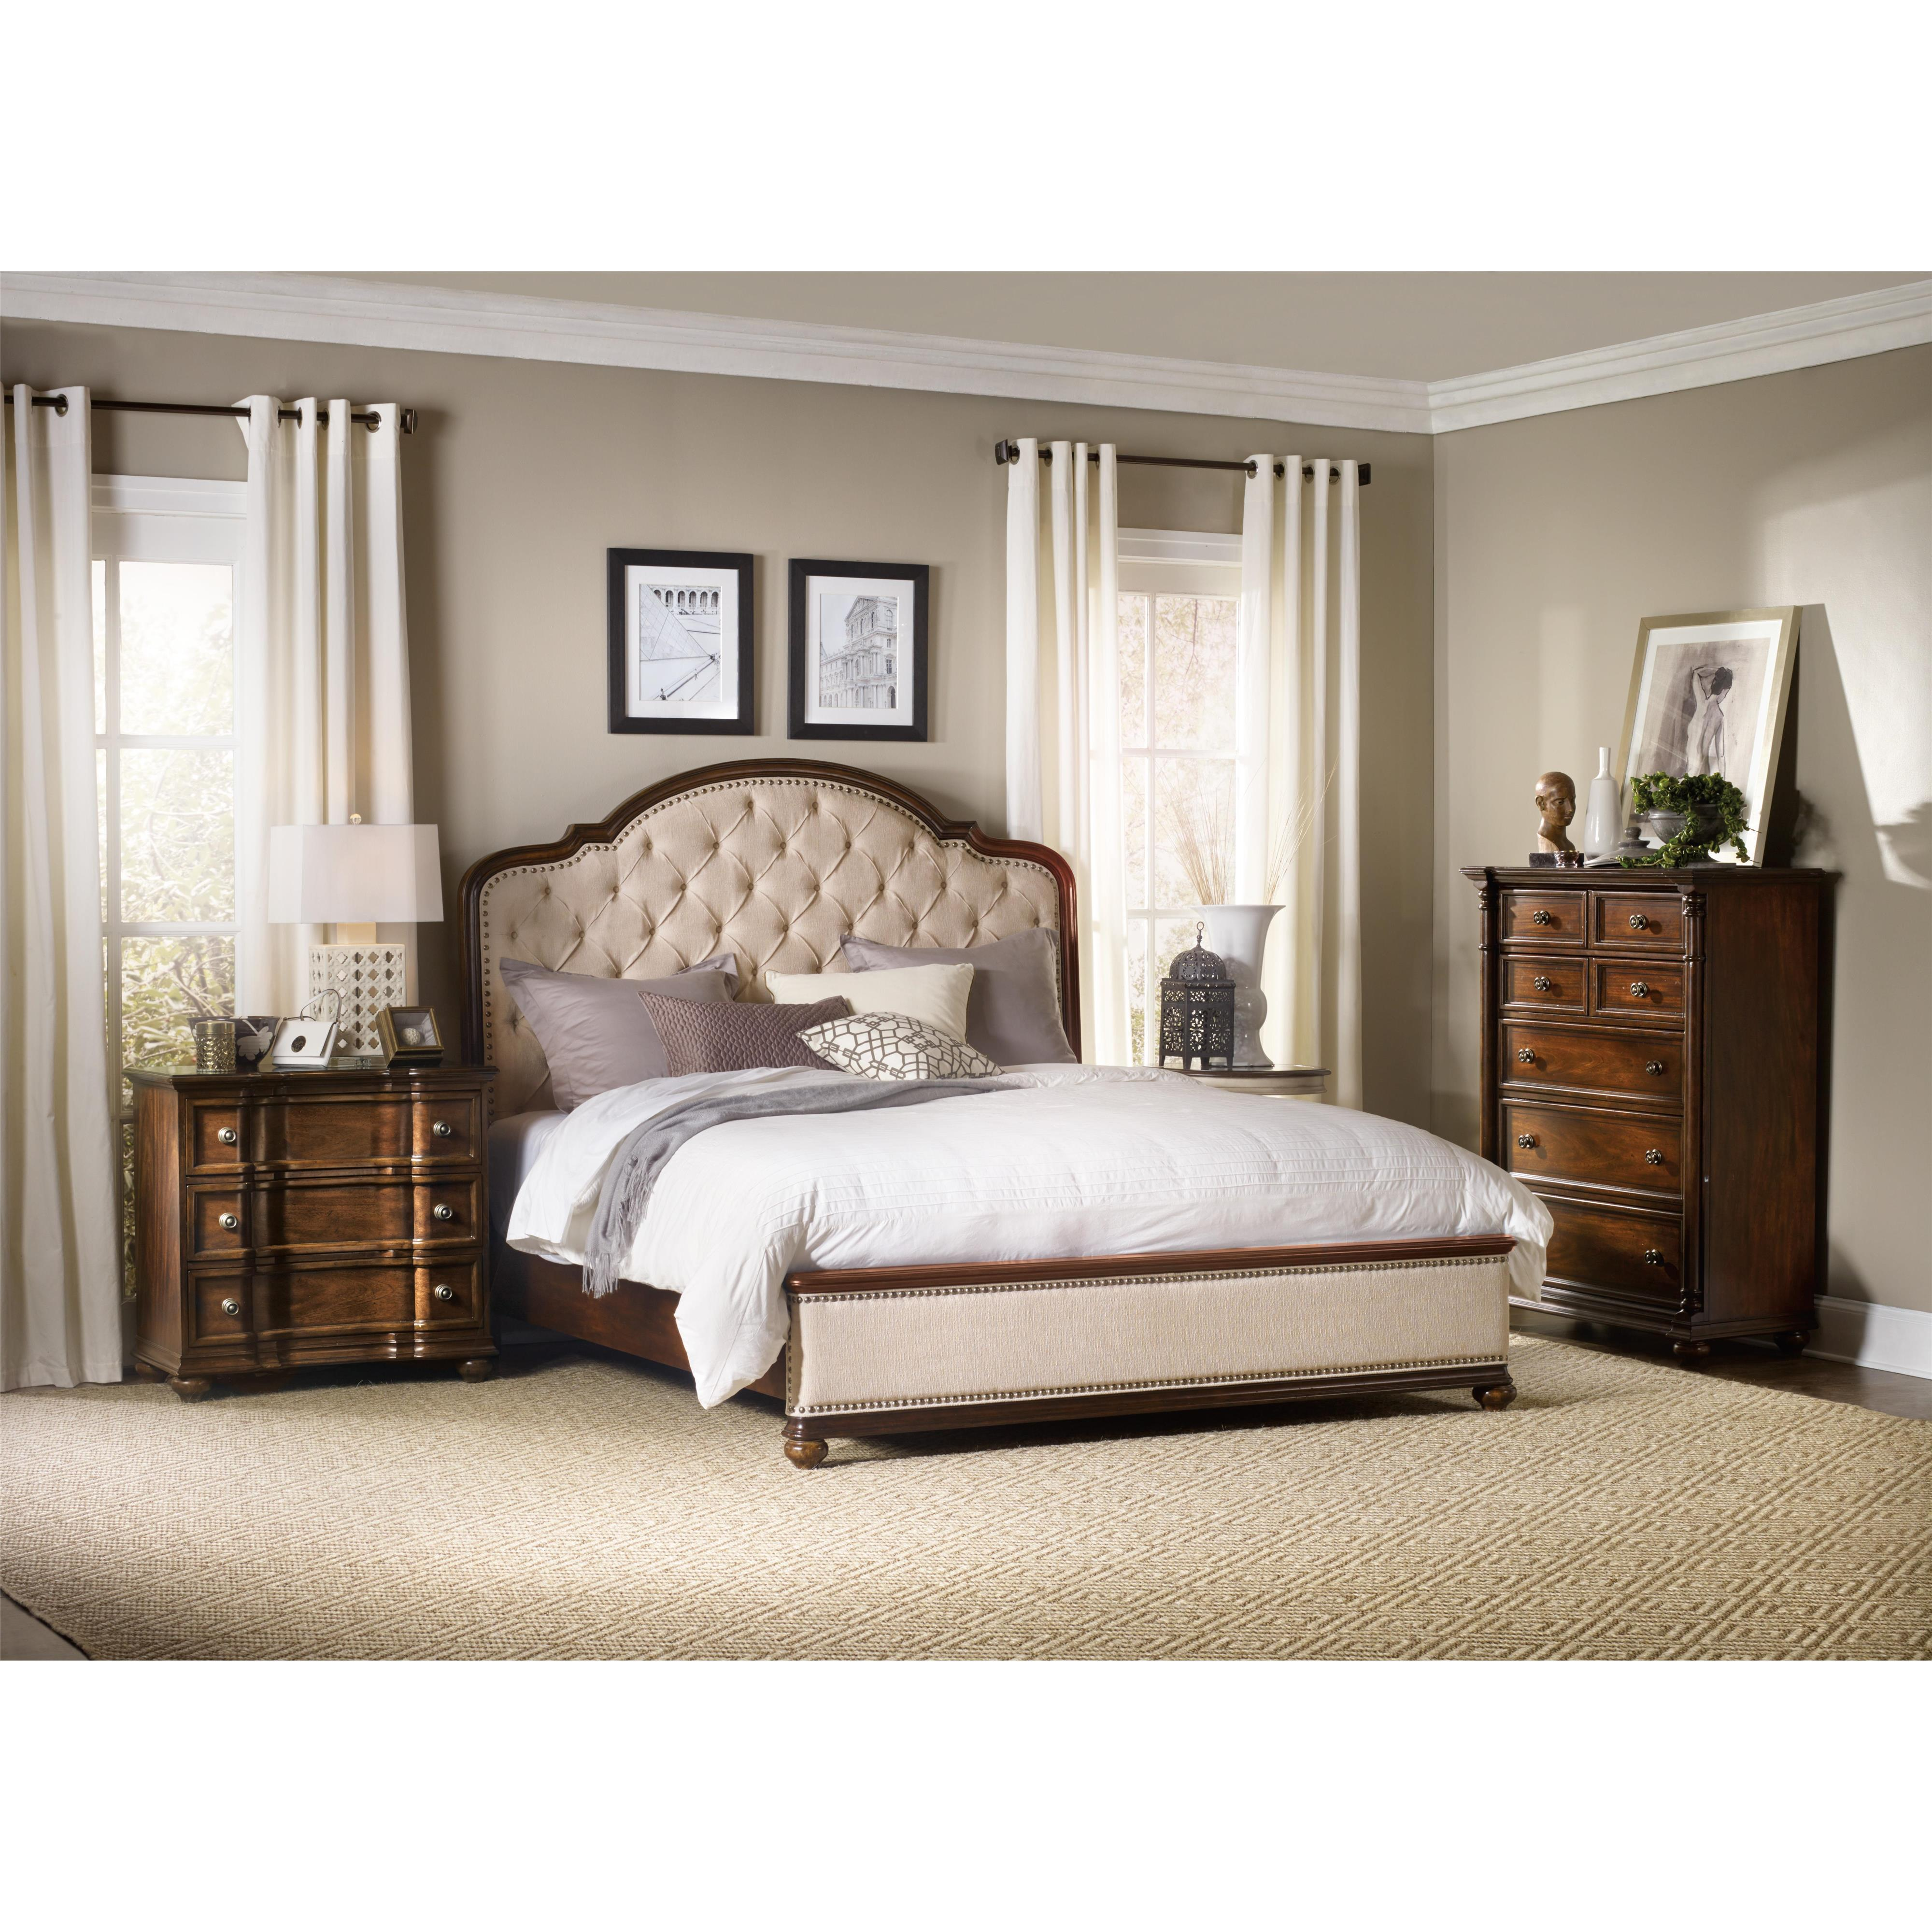 Hooker furniture leesburg california king bedroom group for Bedroom furniture groups